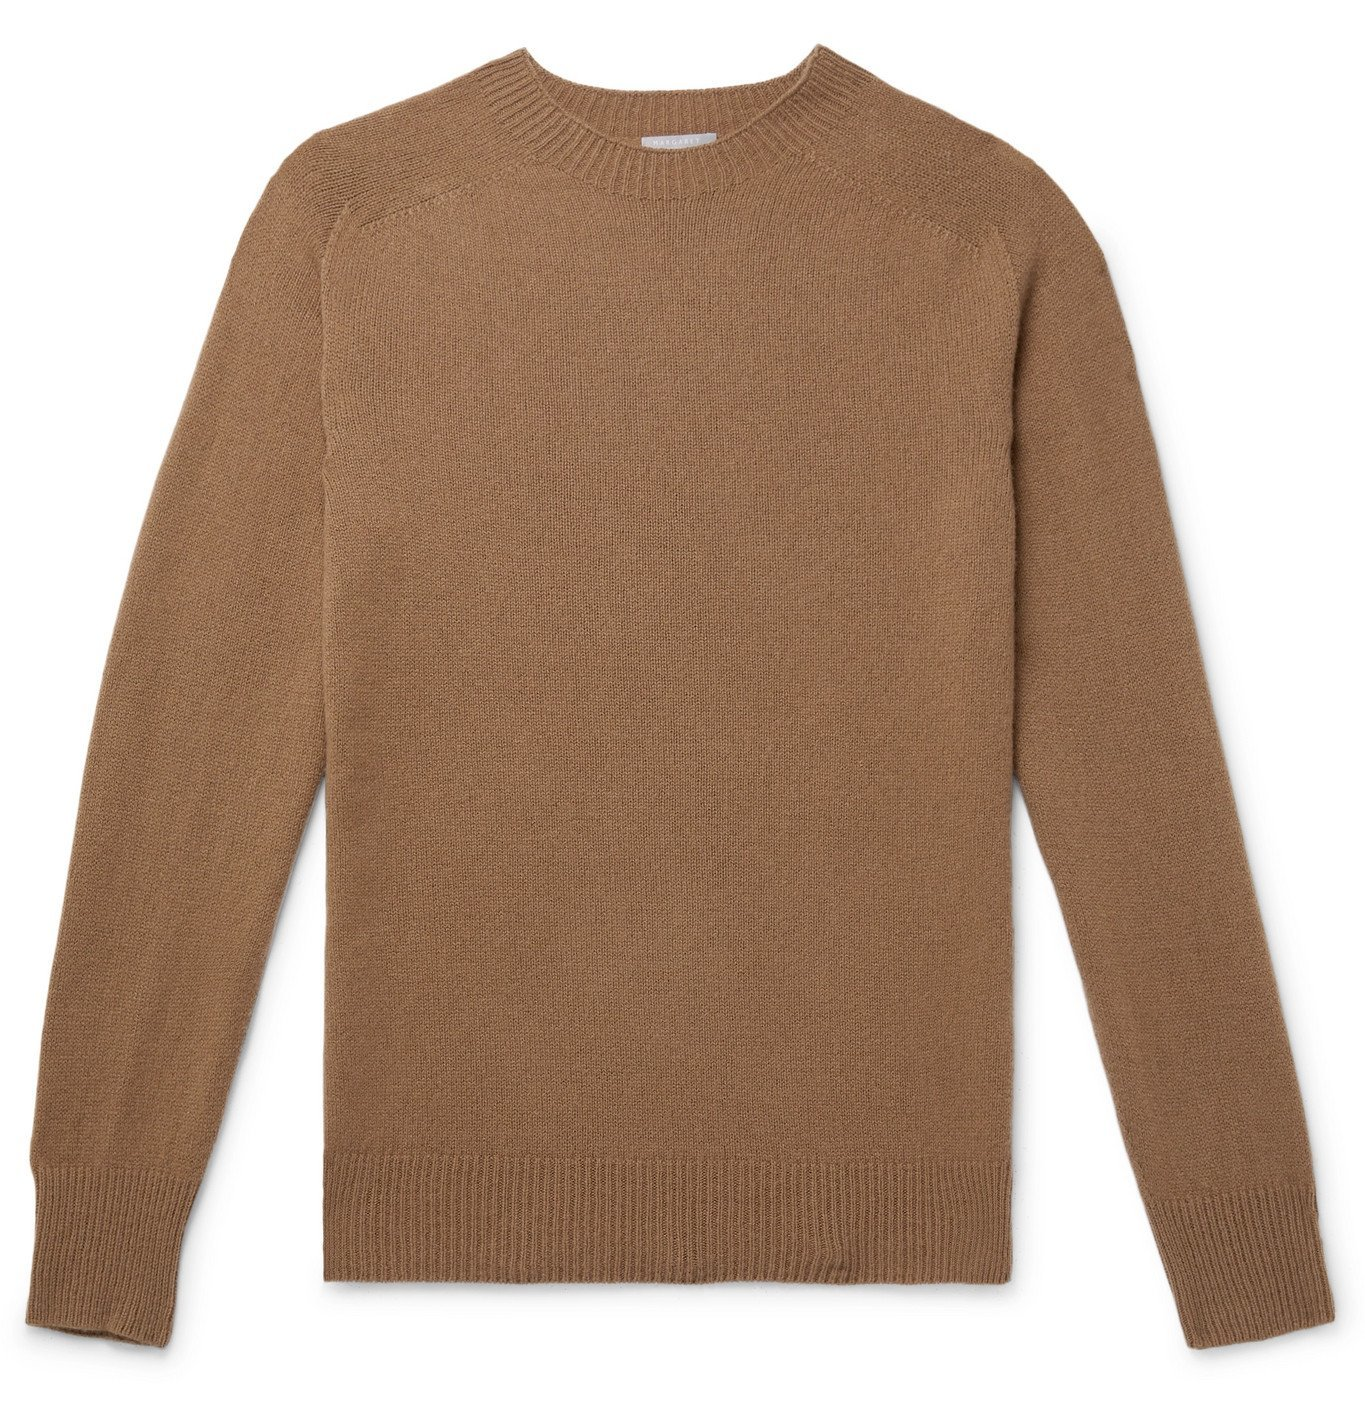 Margaret Howell - Merino Wool and Cashmere-Blend Sweater - Brown